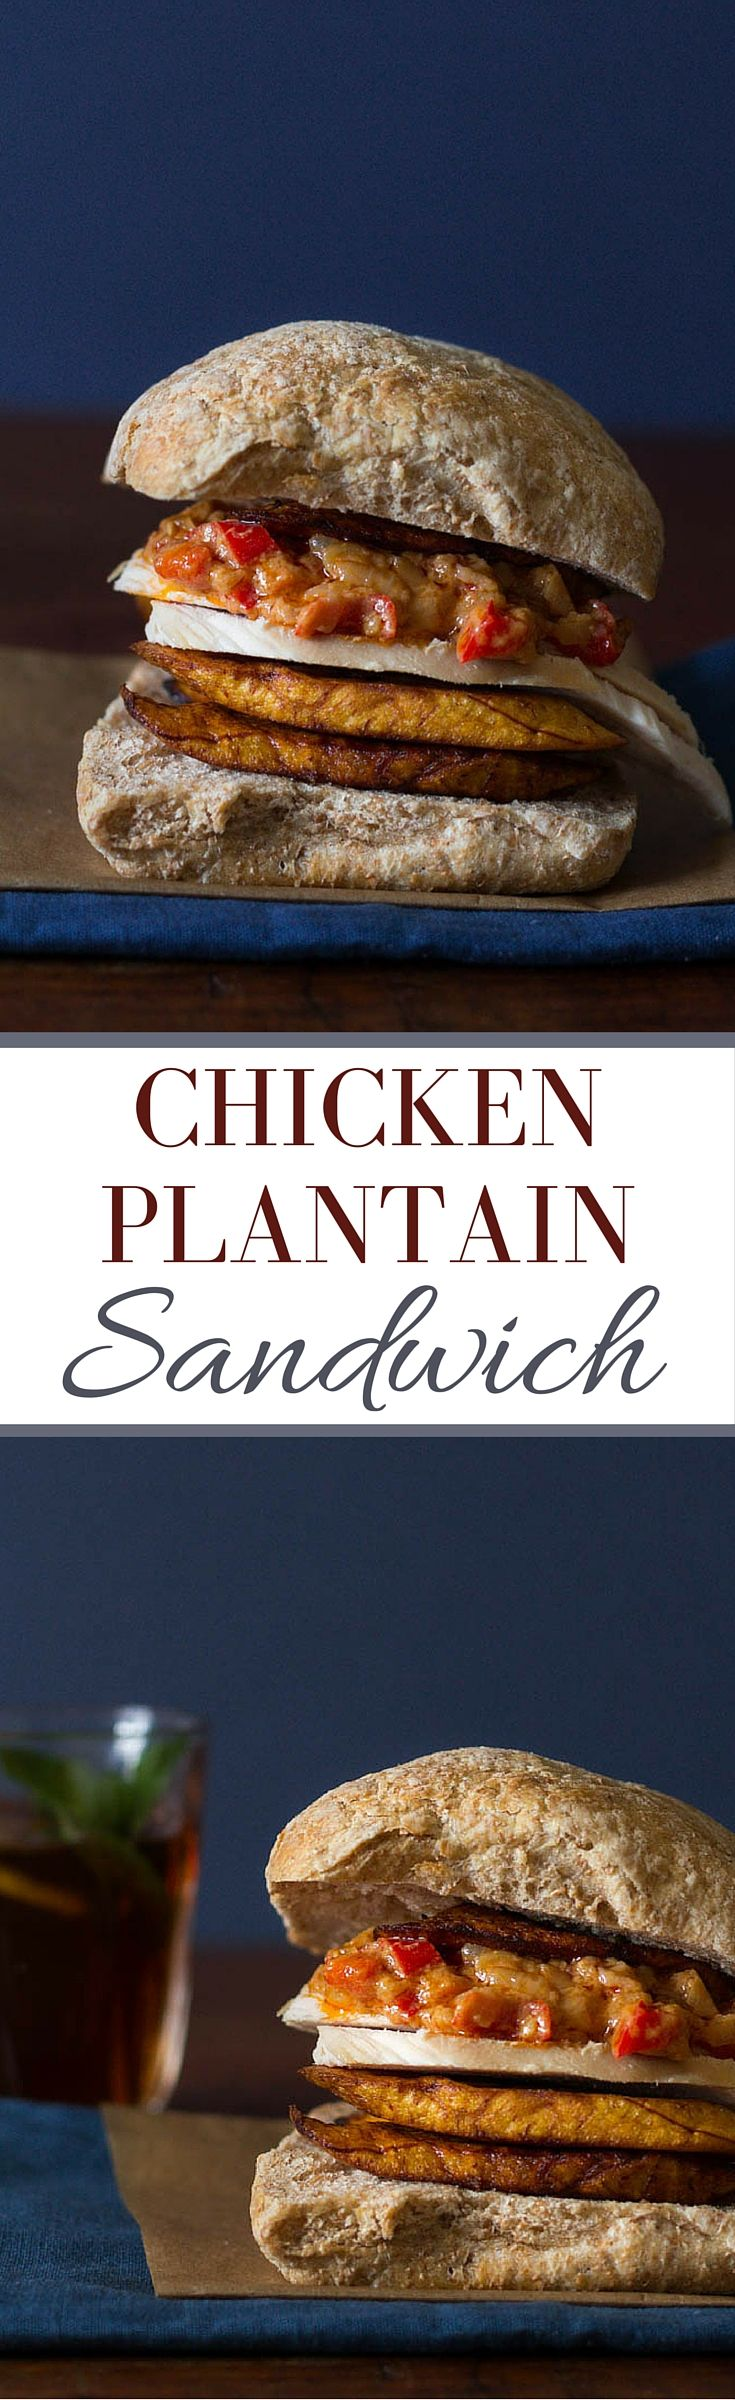 Chicken Plantain Sandwich | Recipes From A Pantry